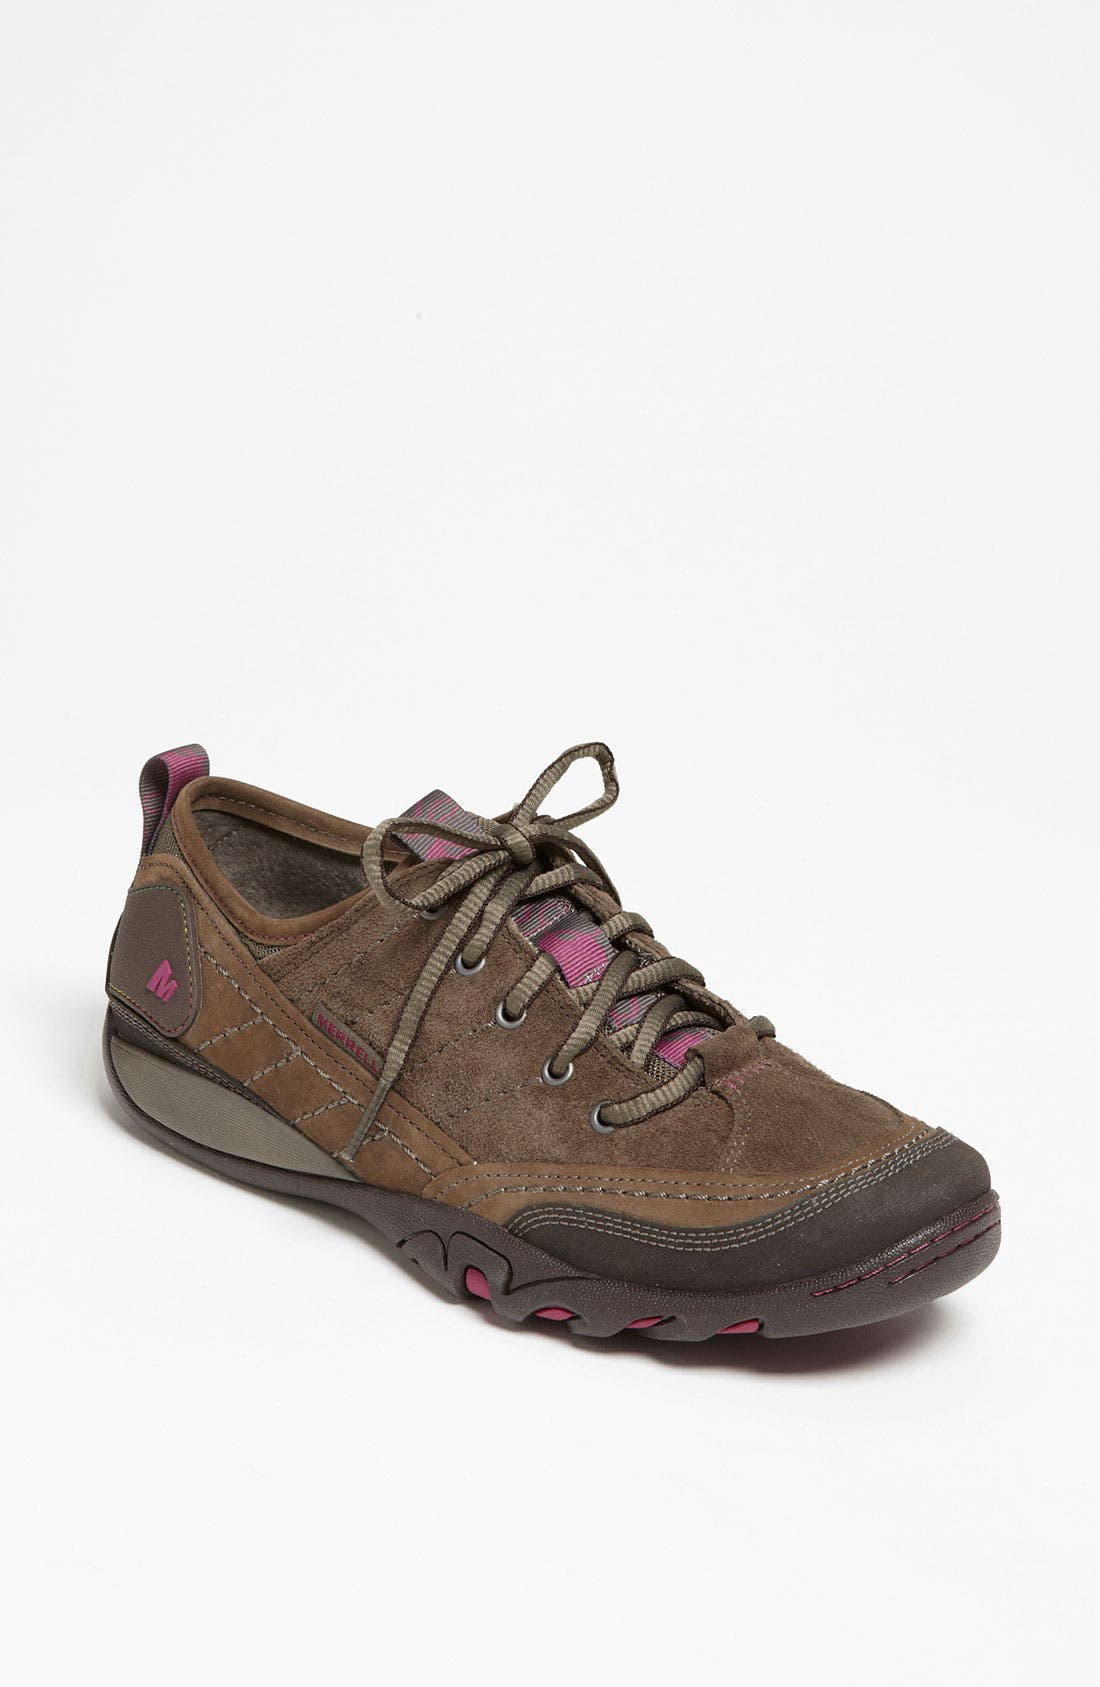 Main Image - MERRELL MIMOSA LACE SNEAKER